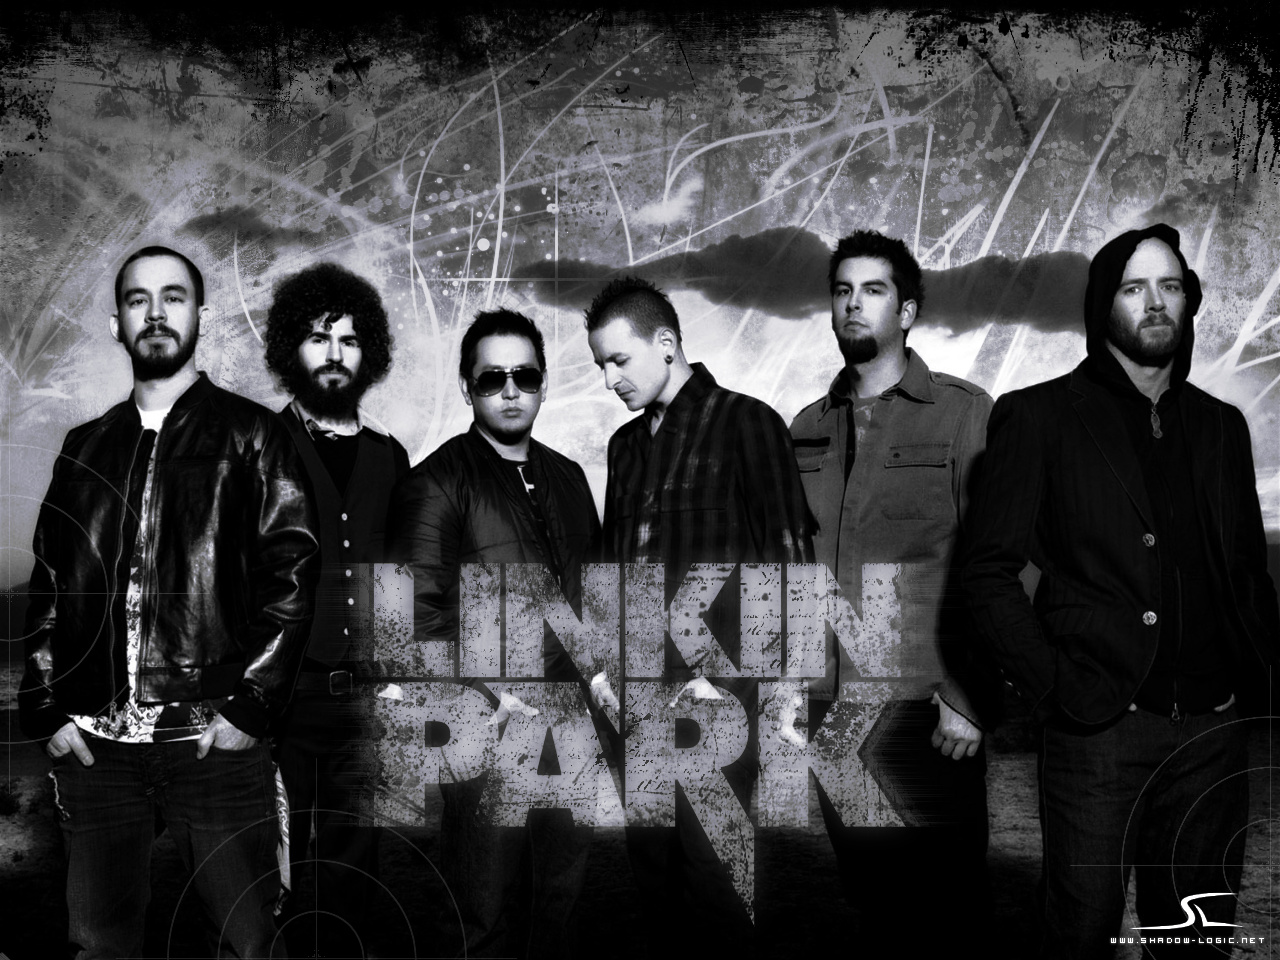 Linkin park wallpaper by gone4ever95 on deviantart linkin park wallpaper by gone4ever95 linkin park wallpaper by gone4ever95 stopboris